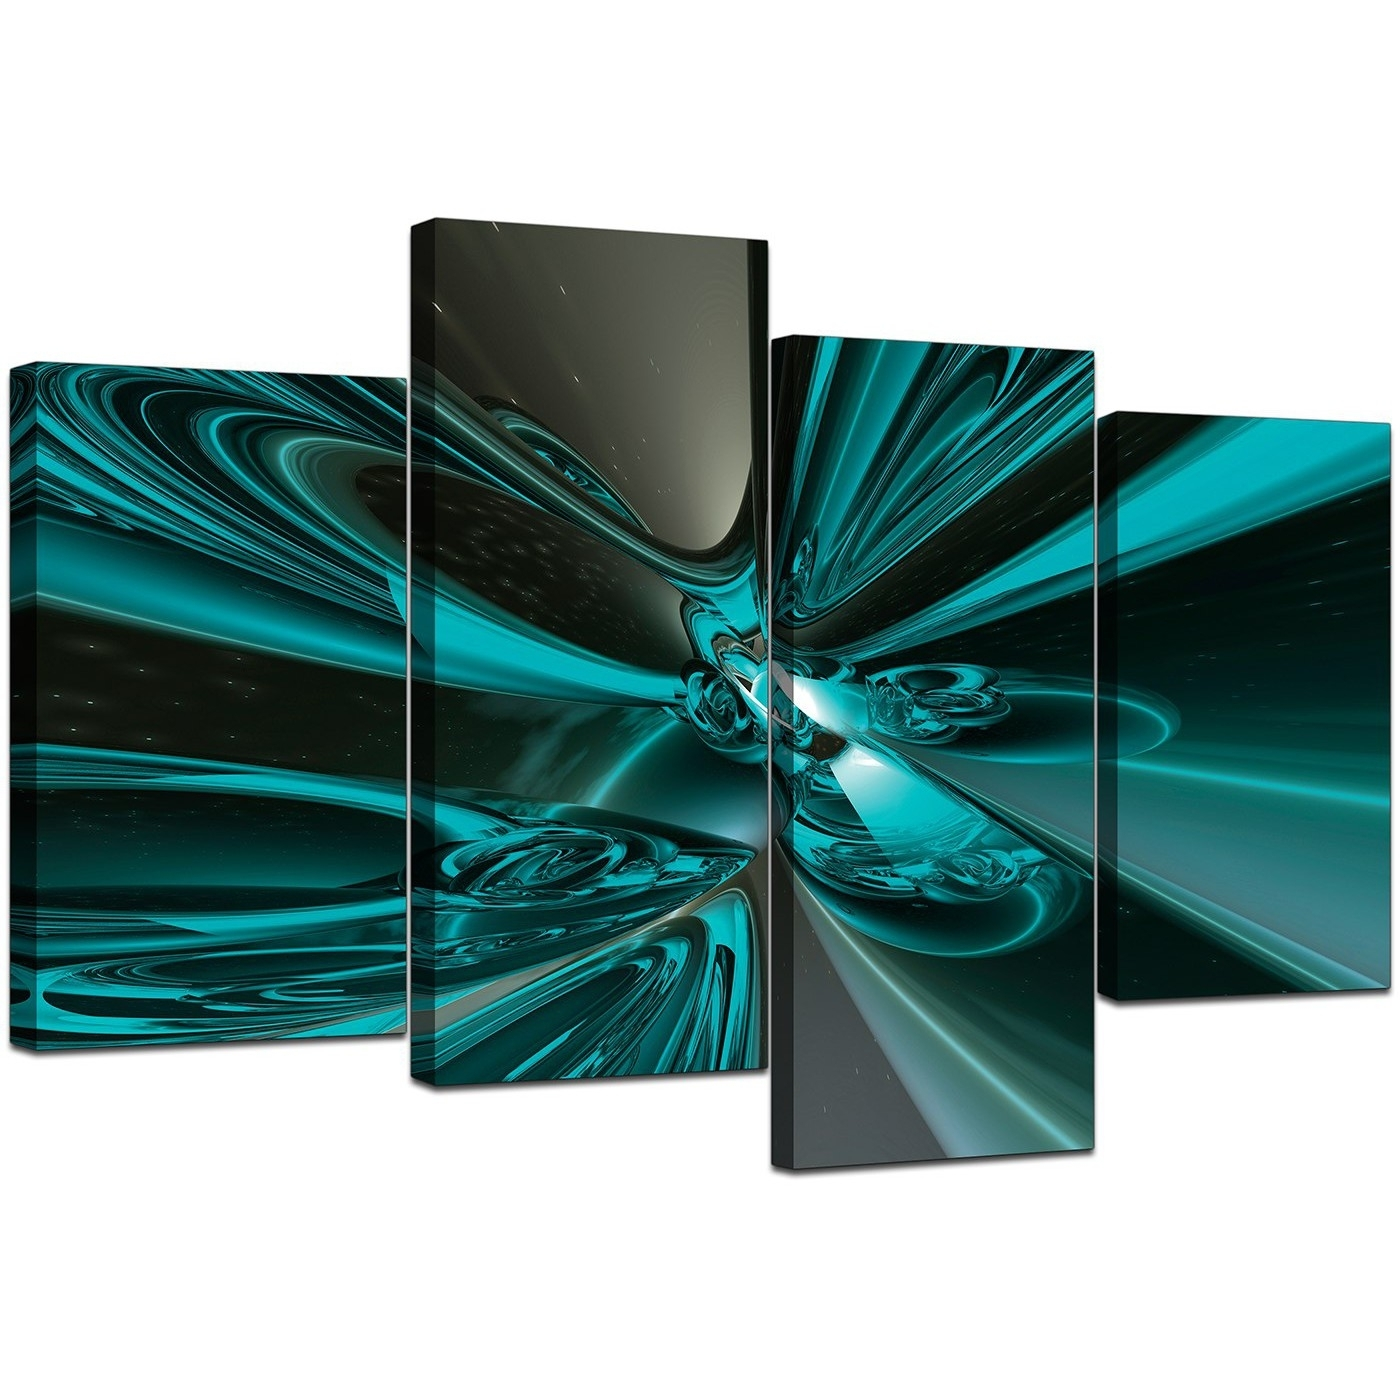 Large Abstract Canvas Art In Teal – For Living Room With Newest Abstract Wall Art Prints (View 10 of 21)